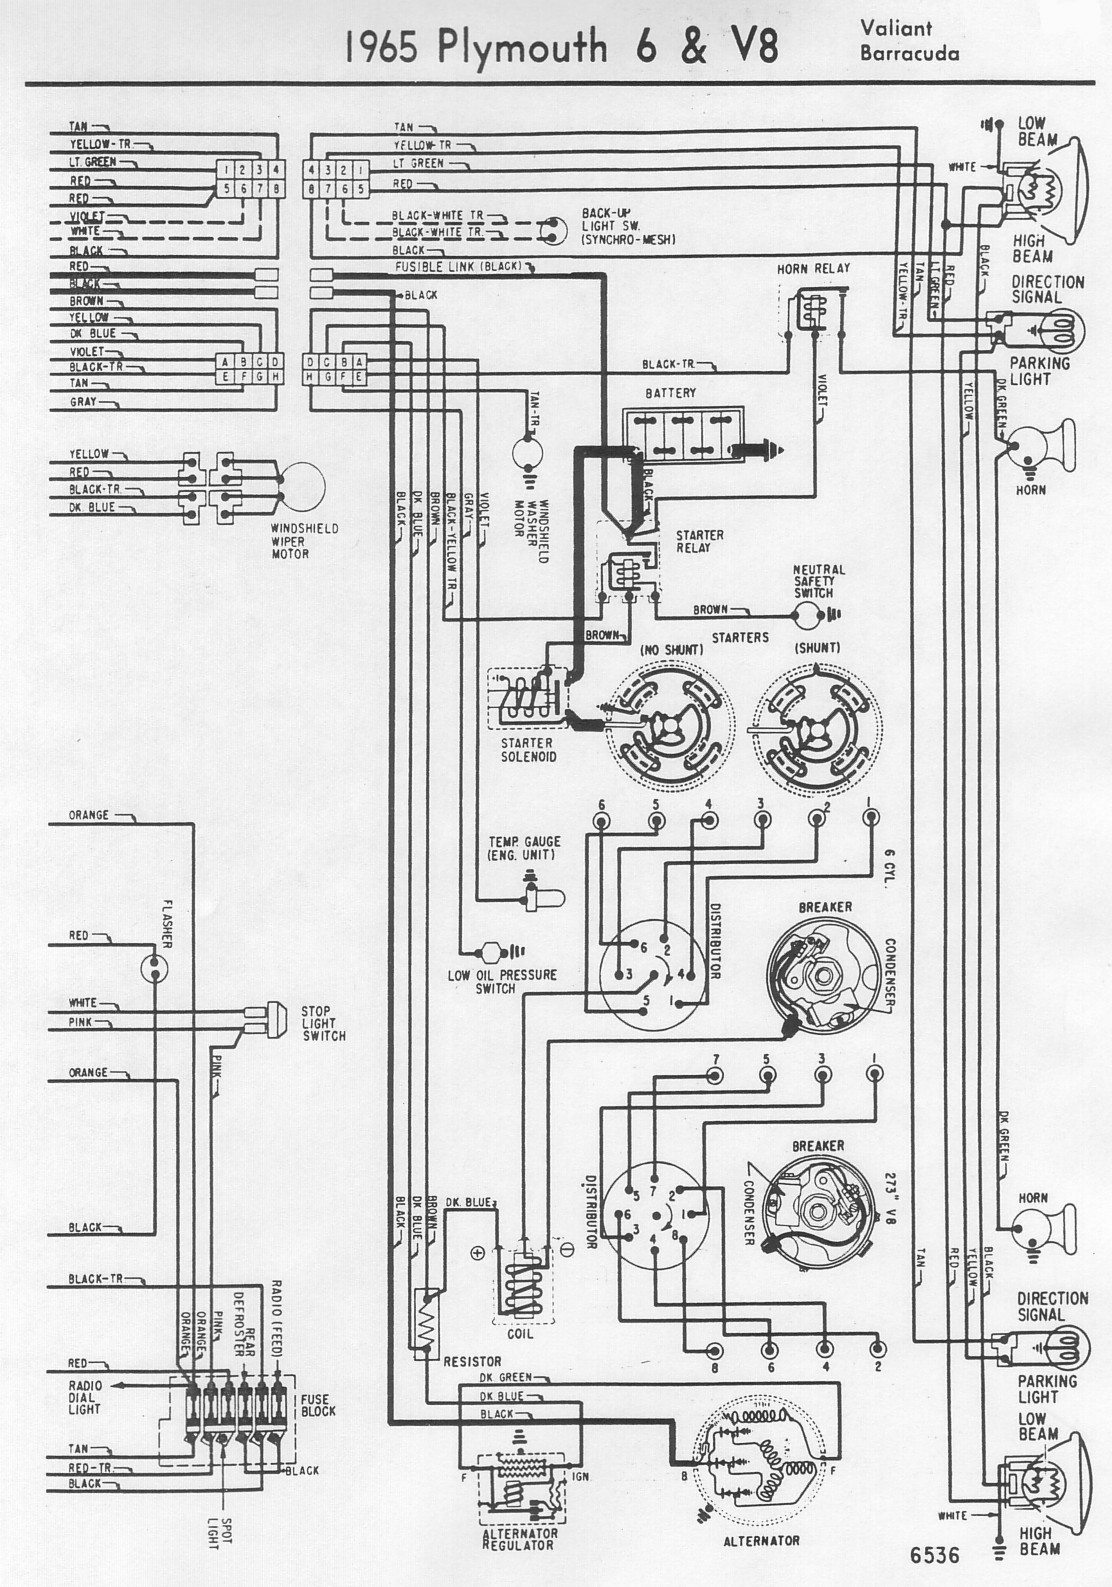 1970 Cuda Engine Wiring Diagram Opinions About 69 Plymouth Road Runner 1971 24 Images Diagrams Omegahost Co 1969